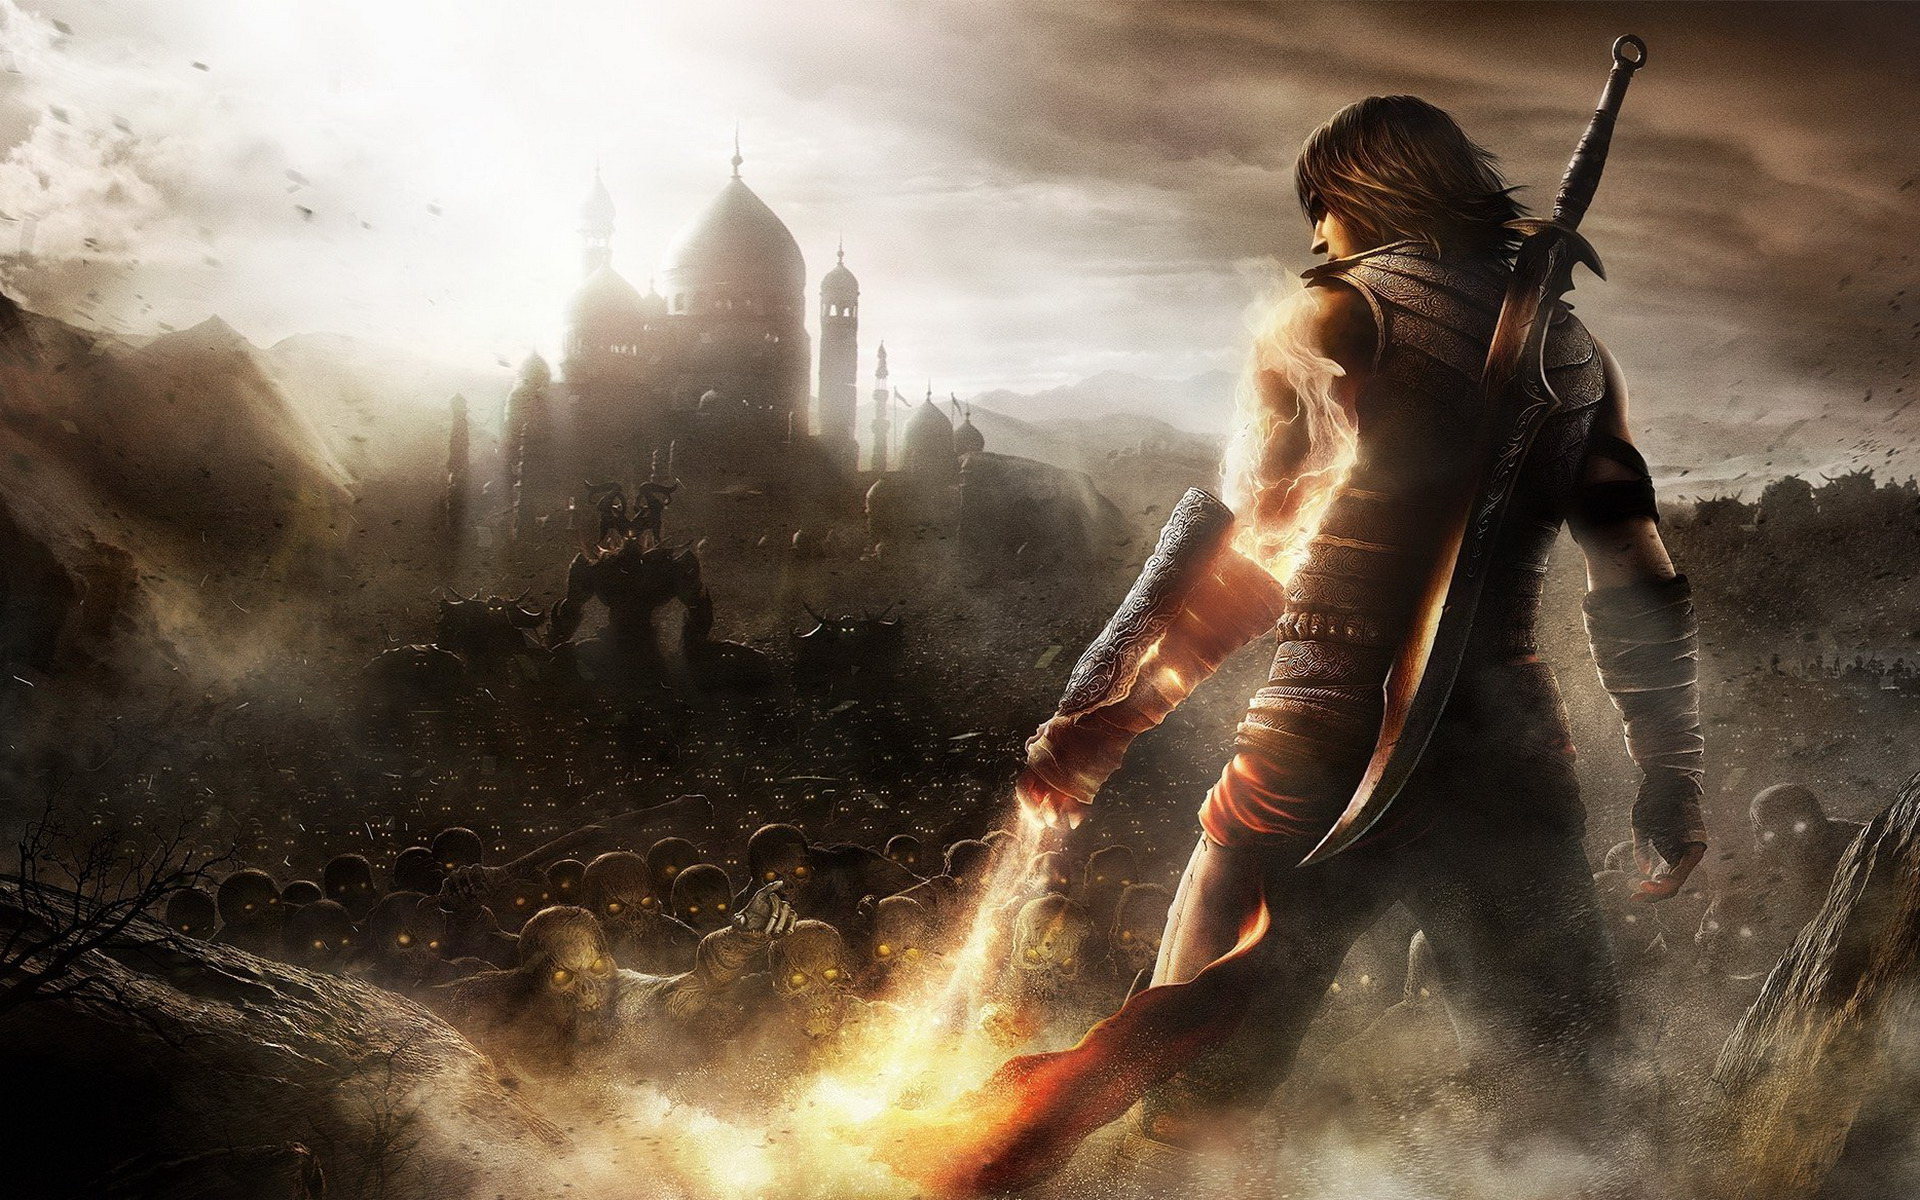 New Prince of Persia in Development